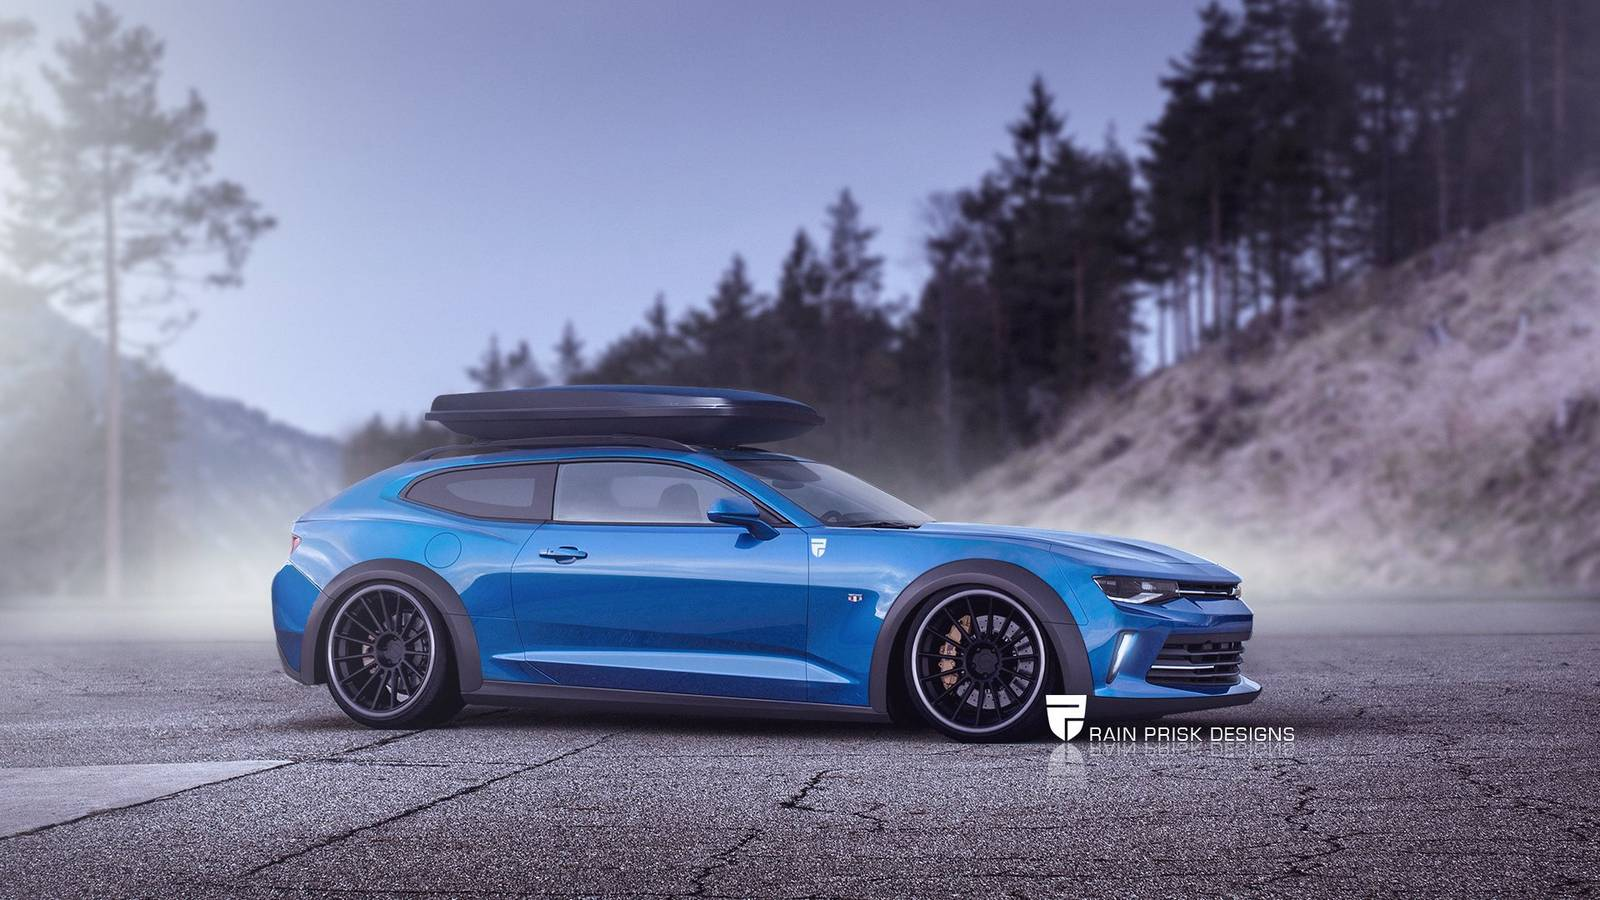 2019 Wrx Wagon >> 7 Crazy Station Wagon Renders Based on Sports Cars - GTspirit